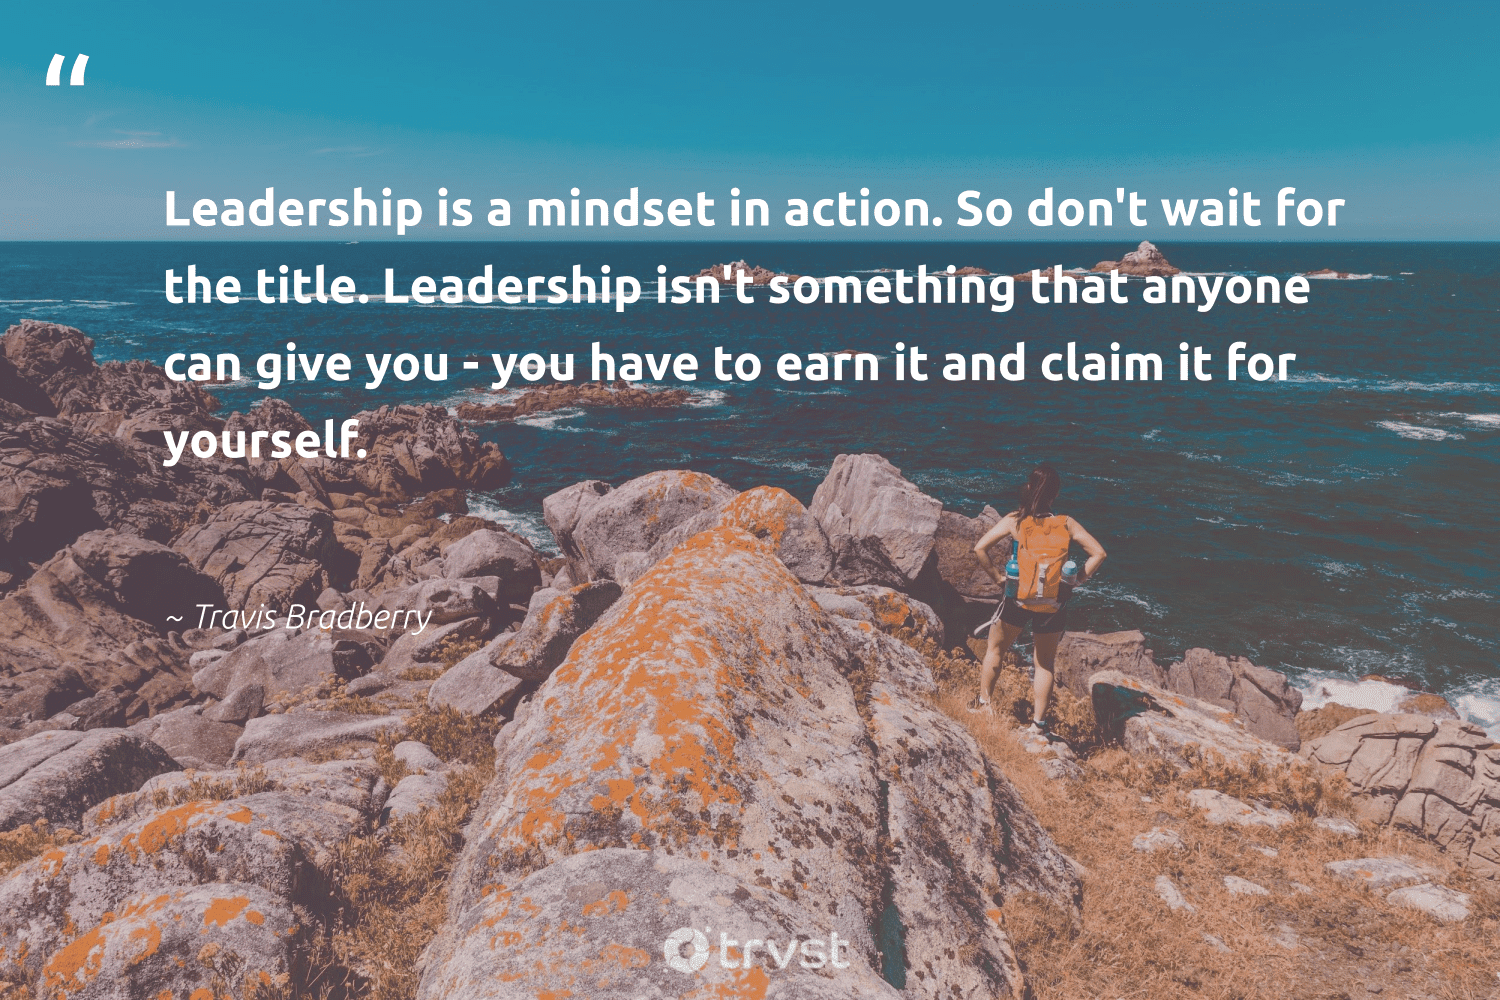 """""""Leadership is a mindset in action. So don't wait for the title. Leadership isn't something that anyone can give you - you have to earn it and claim it for yourself.""""  - Travis Bradberry #trvst #quotes #mindset #leadership #mindfulness #changemakers #begreat #takeaction #creativemindset #health #nevergiveup #dosomething"""